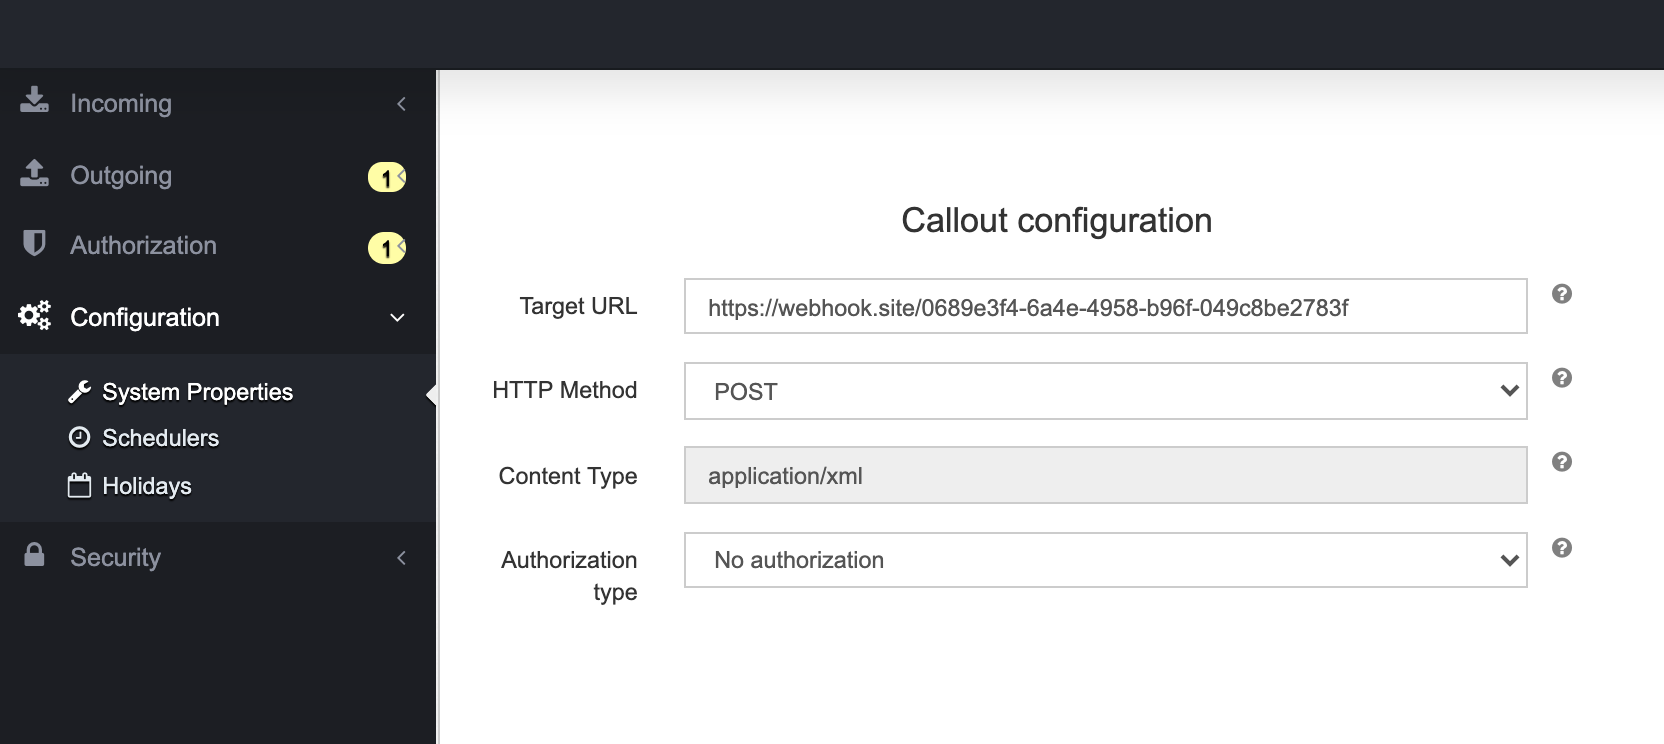 payments_gateway_callout_configuration